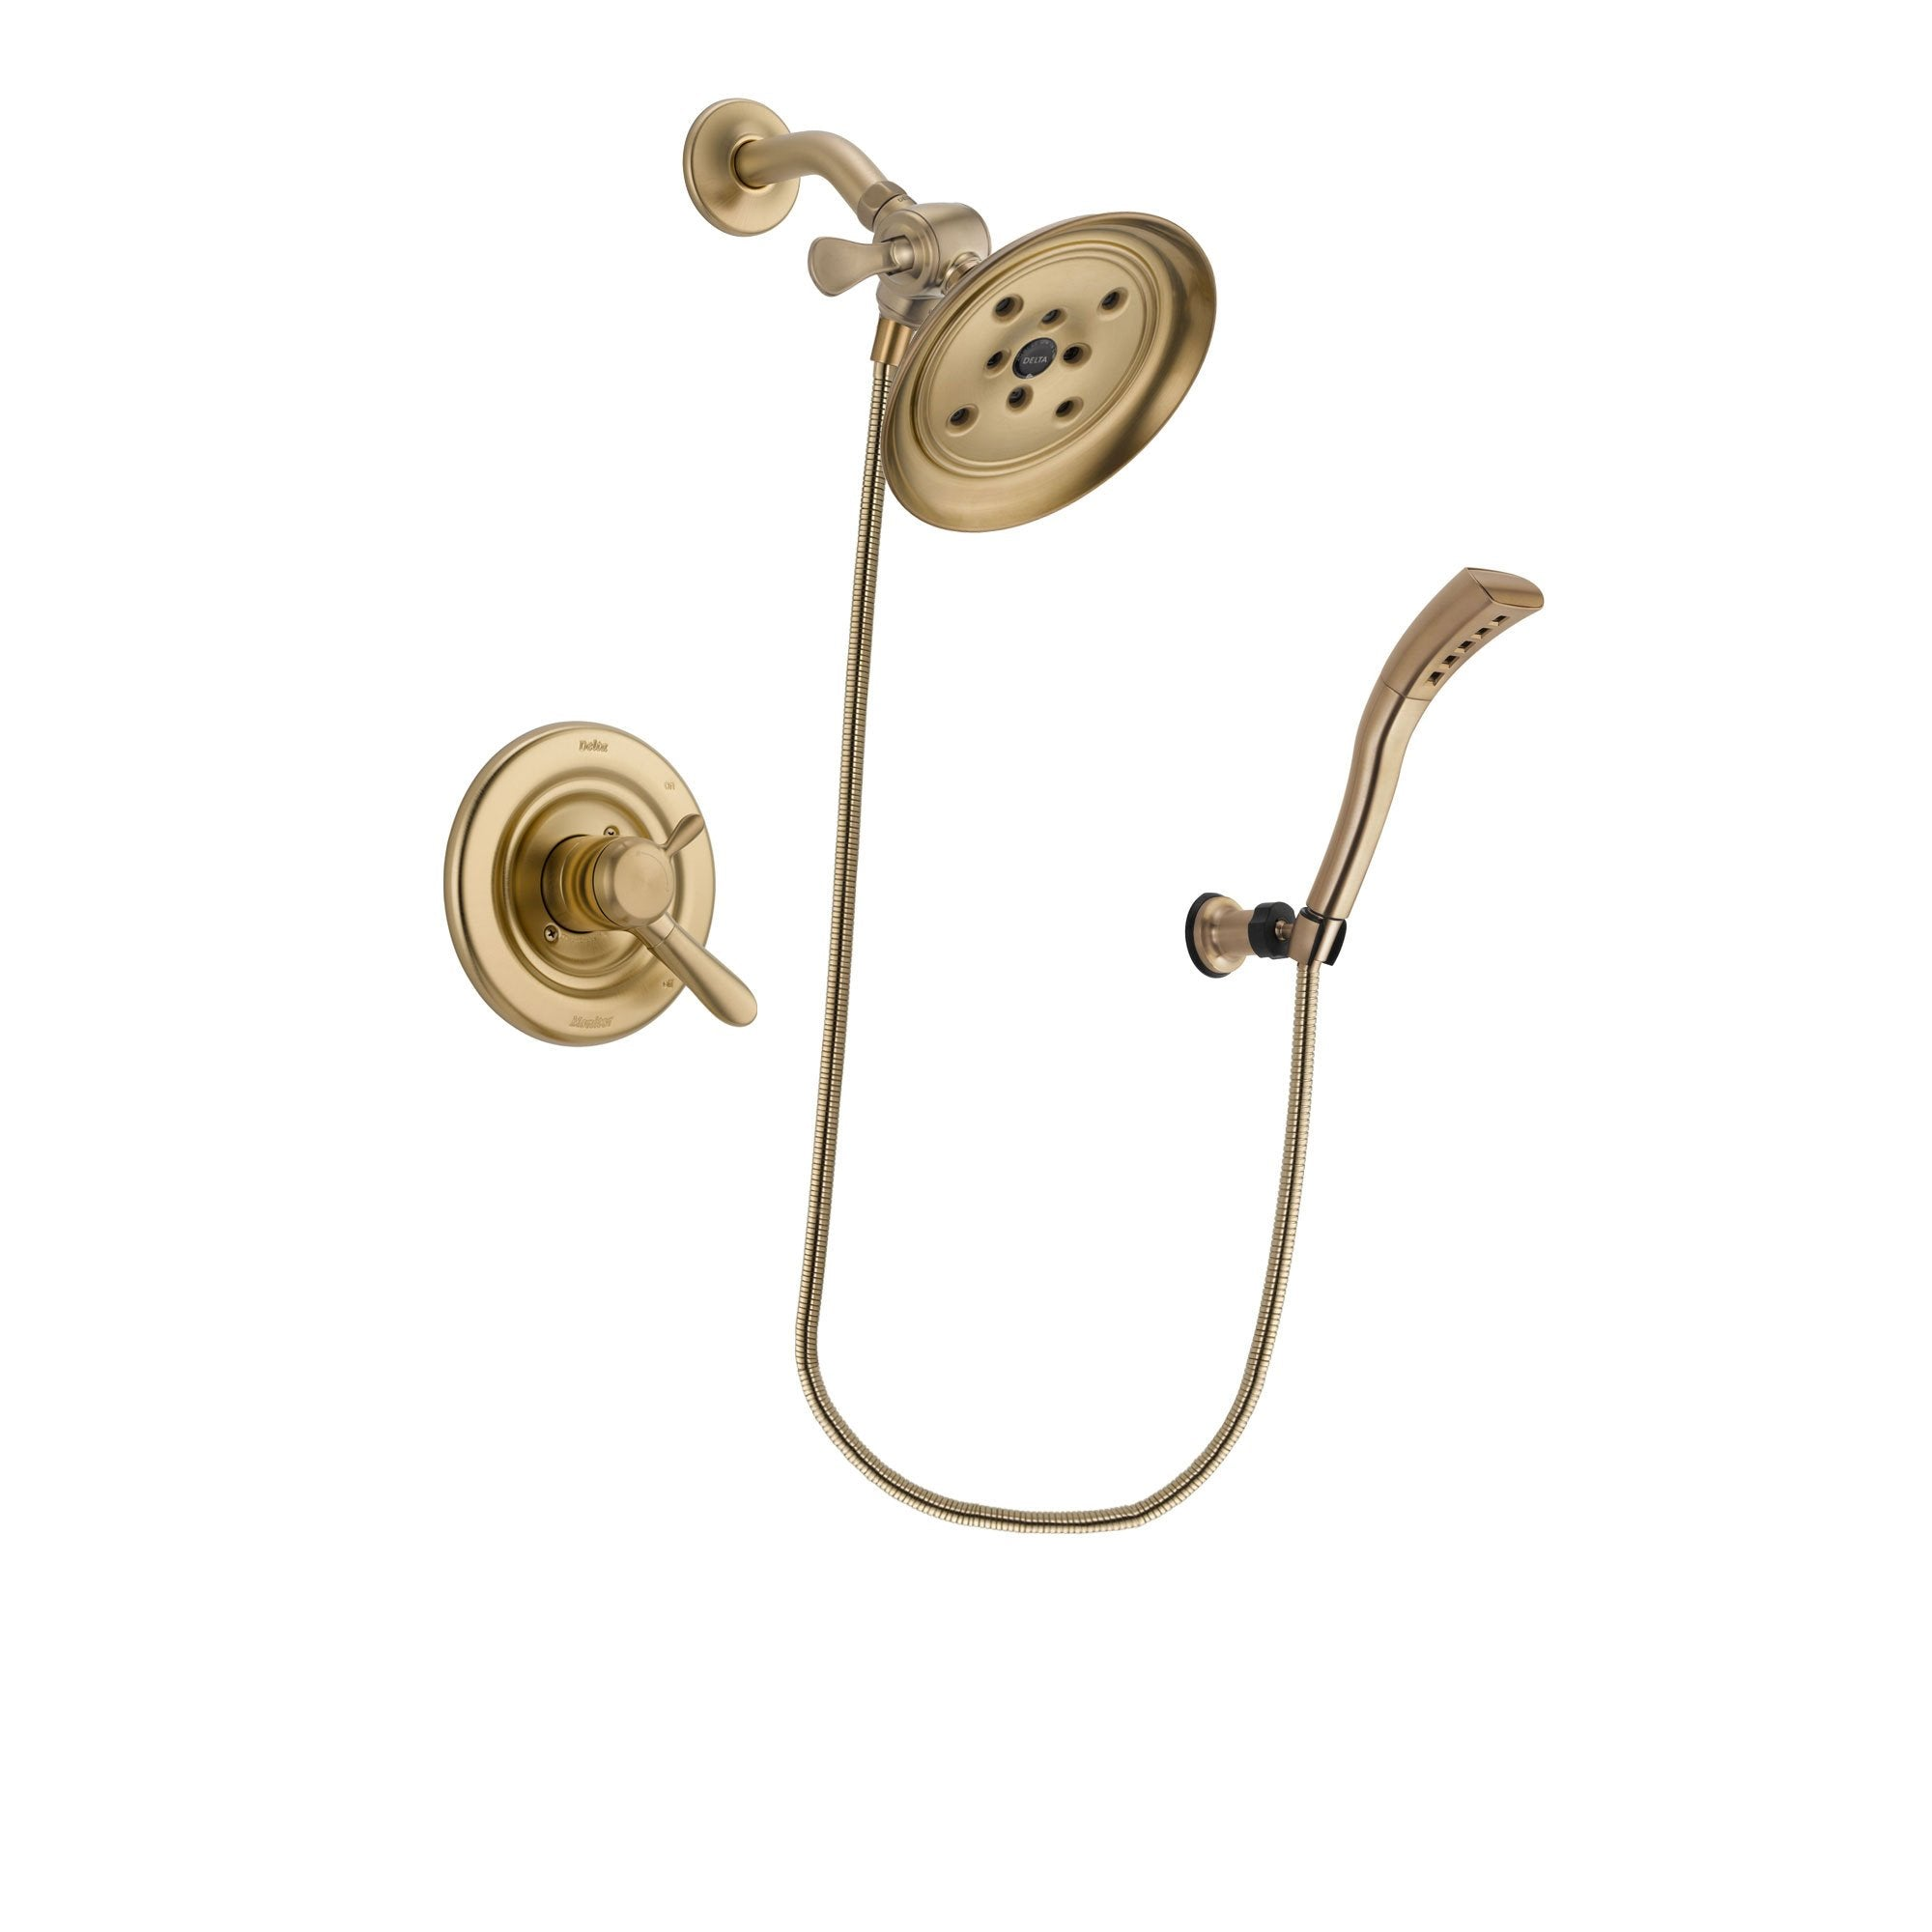 Delta Lahara Champagne Bronze Finish Dual Control Shower Faucet System Package with Large Rain Shower Head and Modern Wall Mount Personal Handheld Shower Spray Includes Rough-in Valve DSP3698V